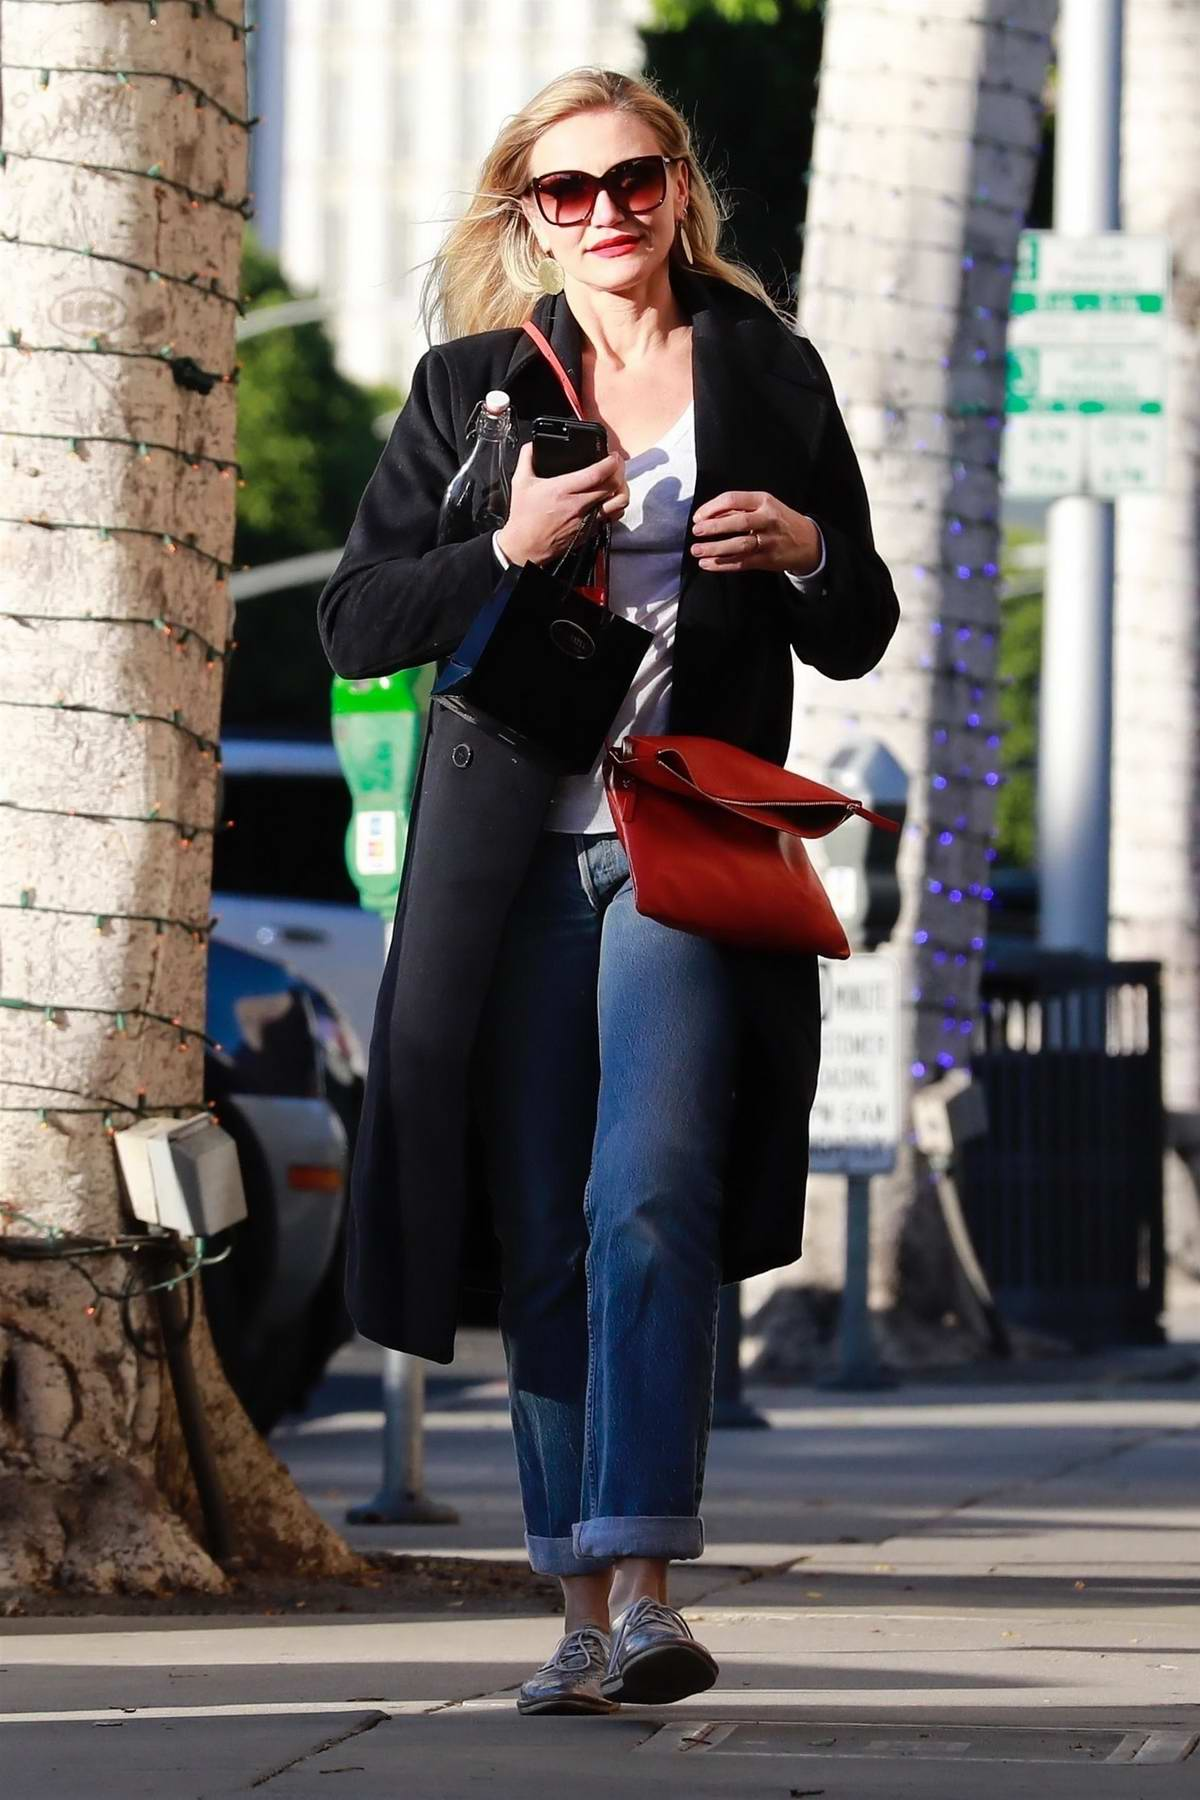 Cameron Diaz shops for Christmas jewelry at XIV Karats in Beverly Hills, Los Angeles